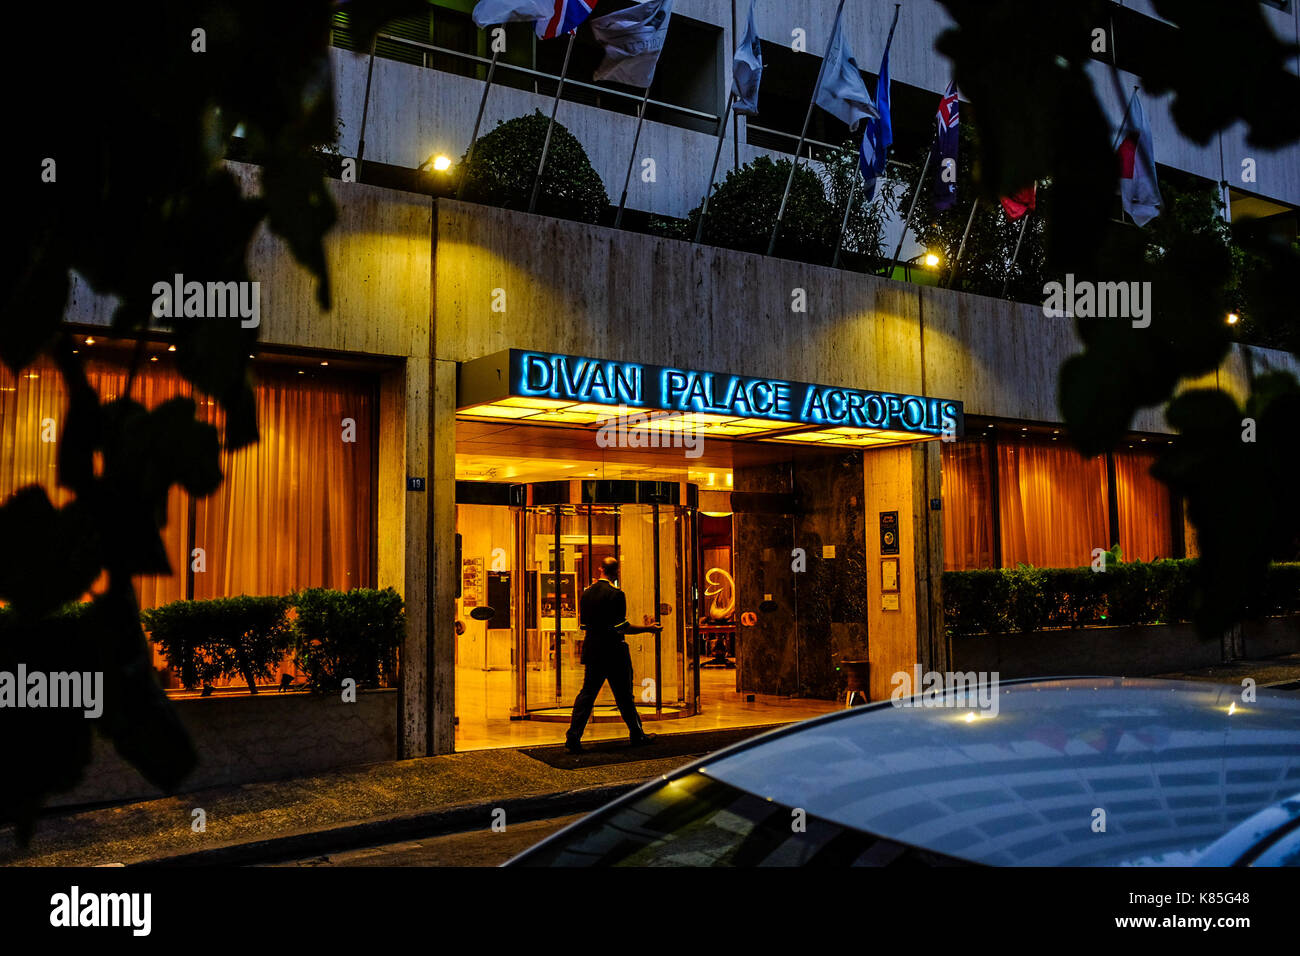 Divani Palace Acropolis Gym Divani Stock Photos And Divani Stock Images Alamy